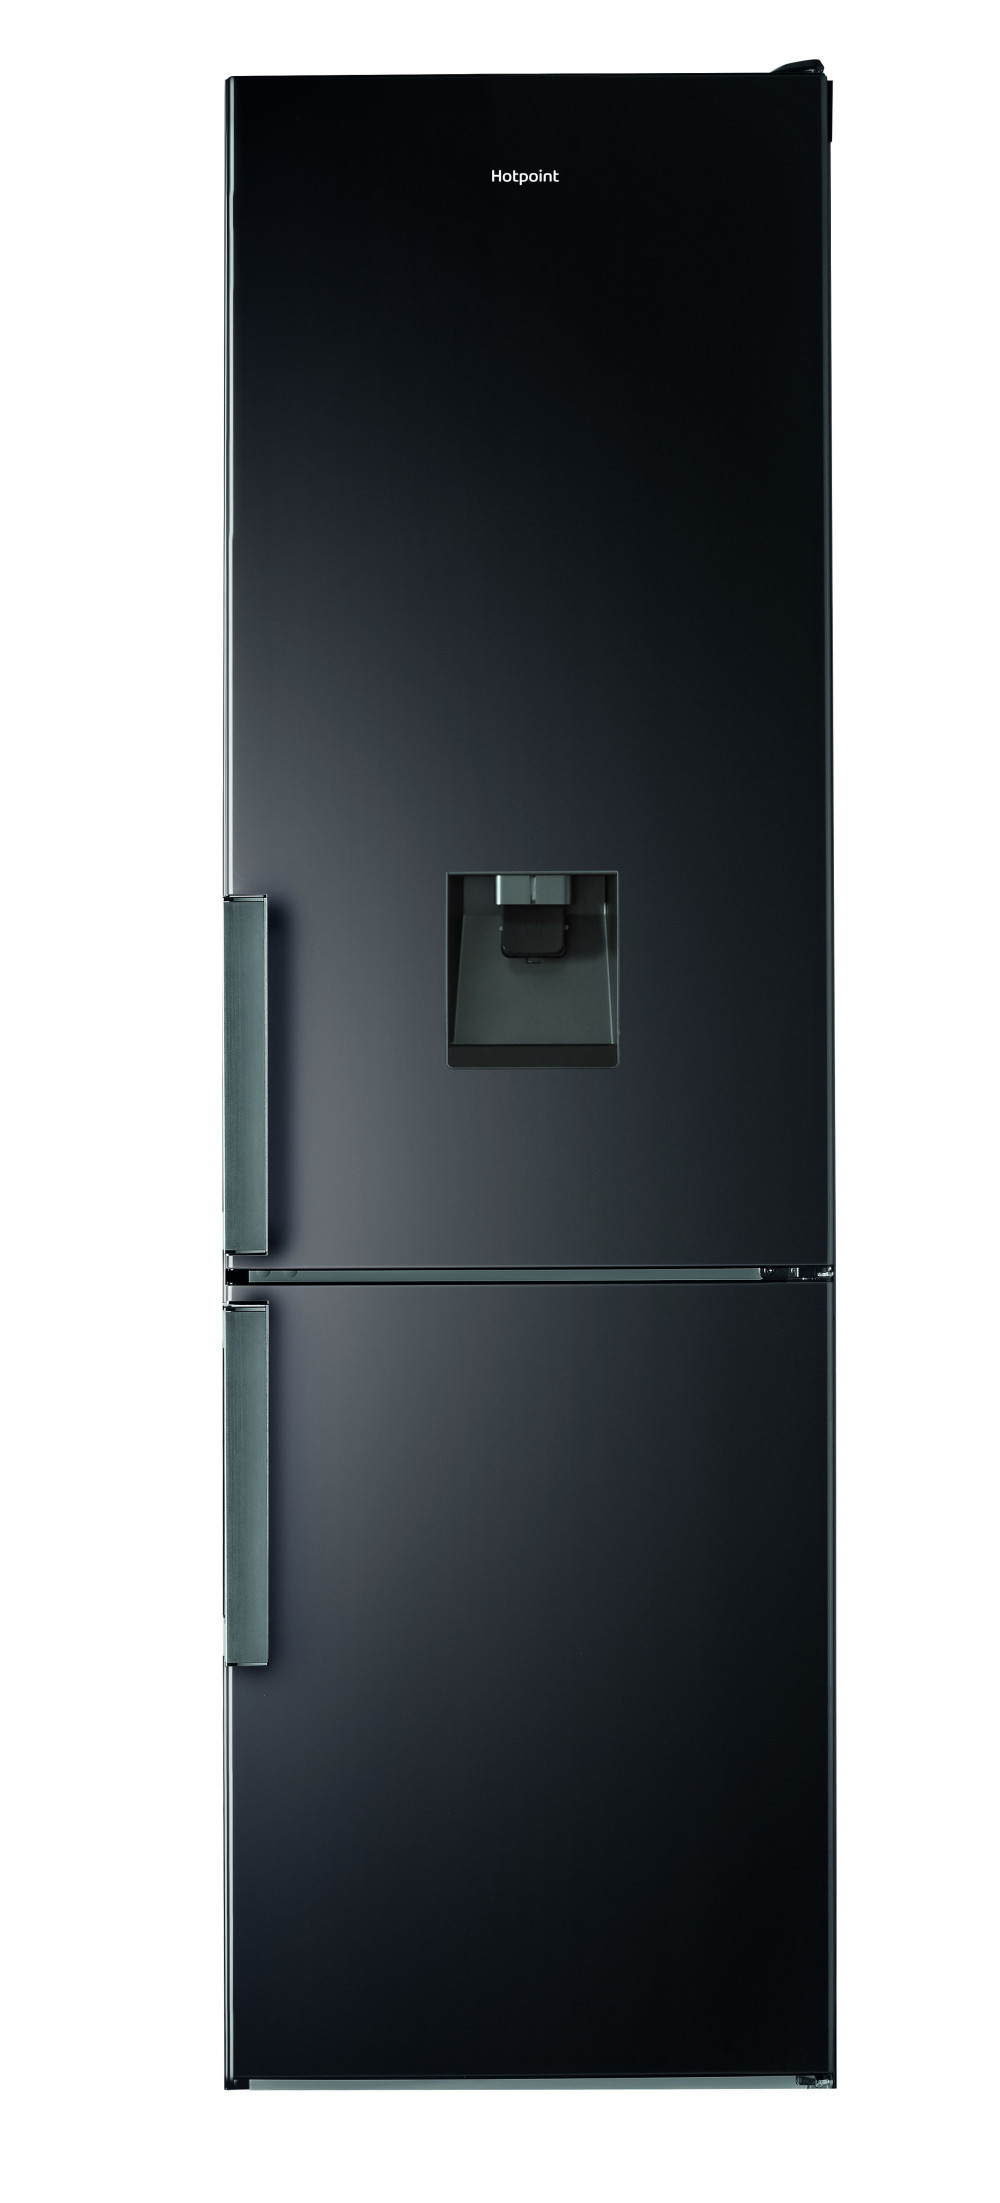 Hotpoint H7T 911A KS H AQUA Fridge Freezer featured image